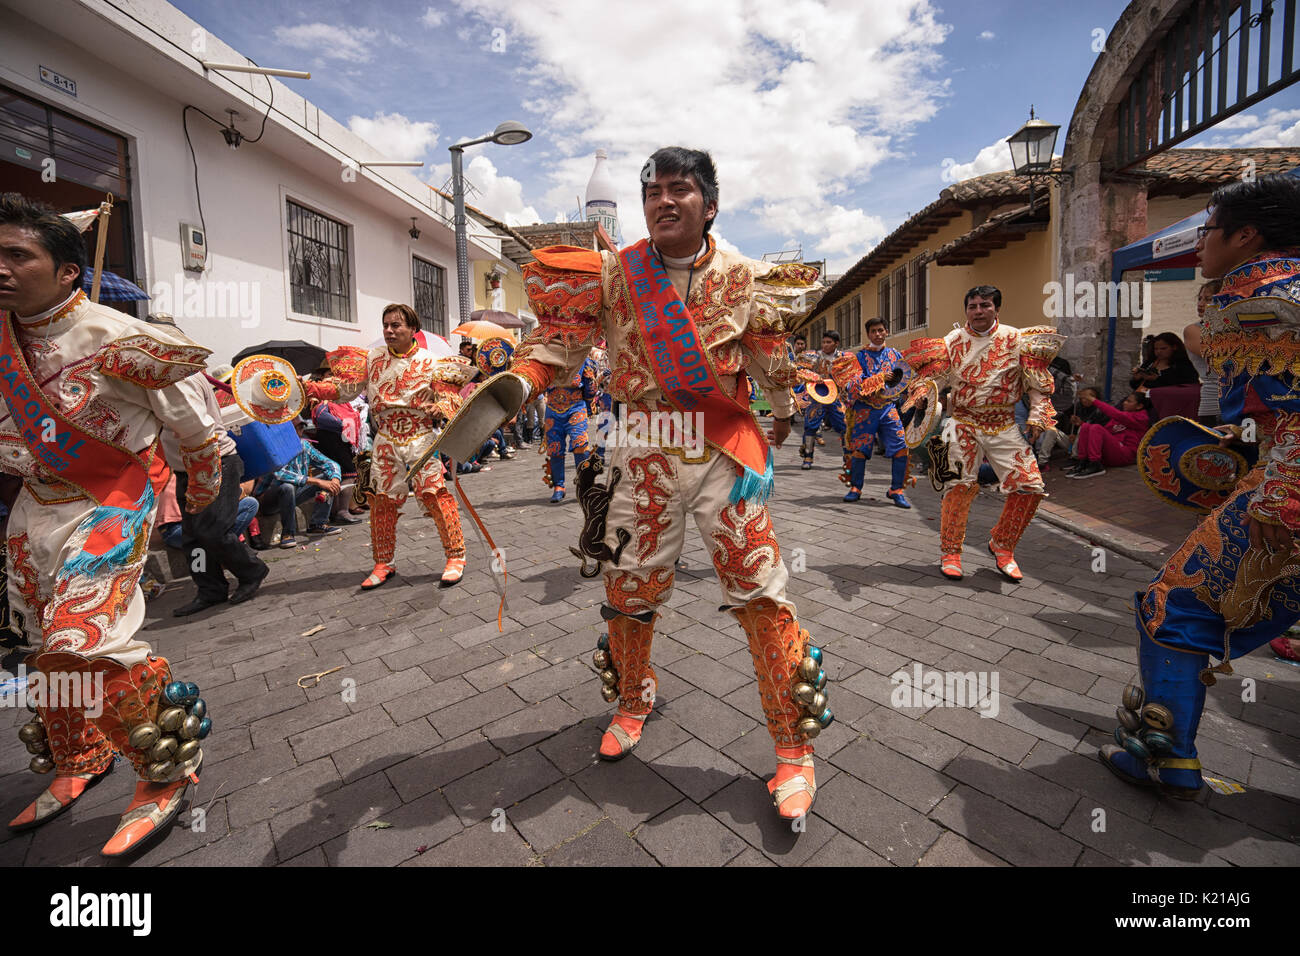 June 17, 2017 Pujili, Ecuador: male dancers in brightly colored costumes  performing on the street during Corpus Christi parade - Stock Image